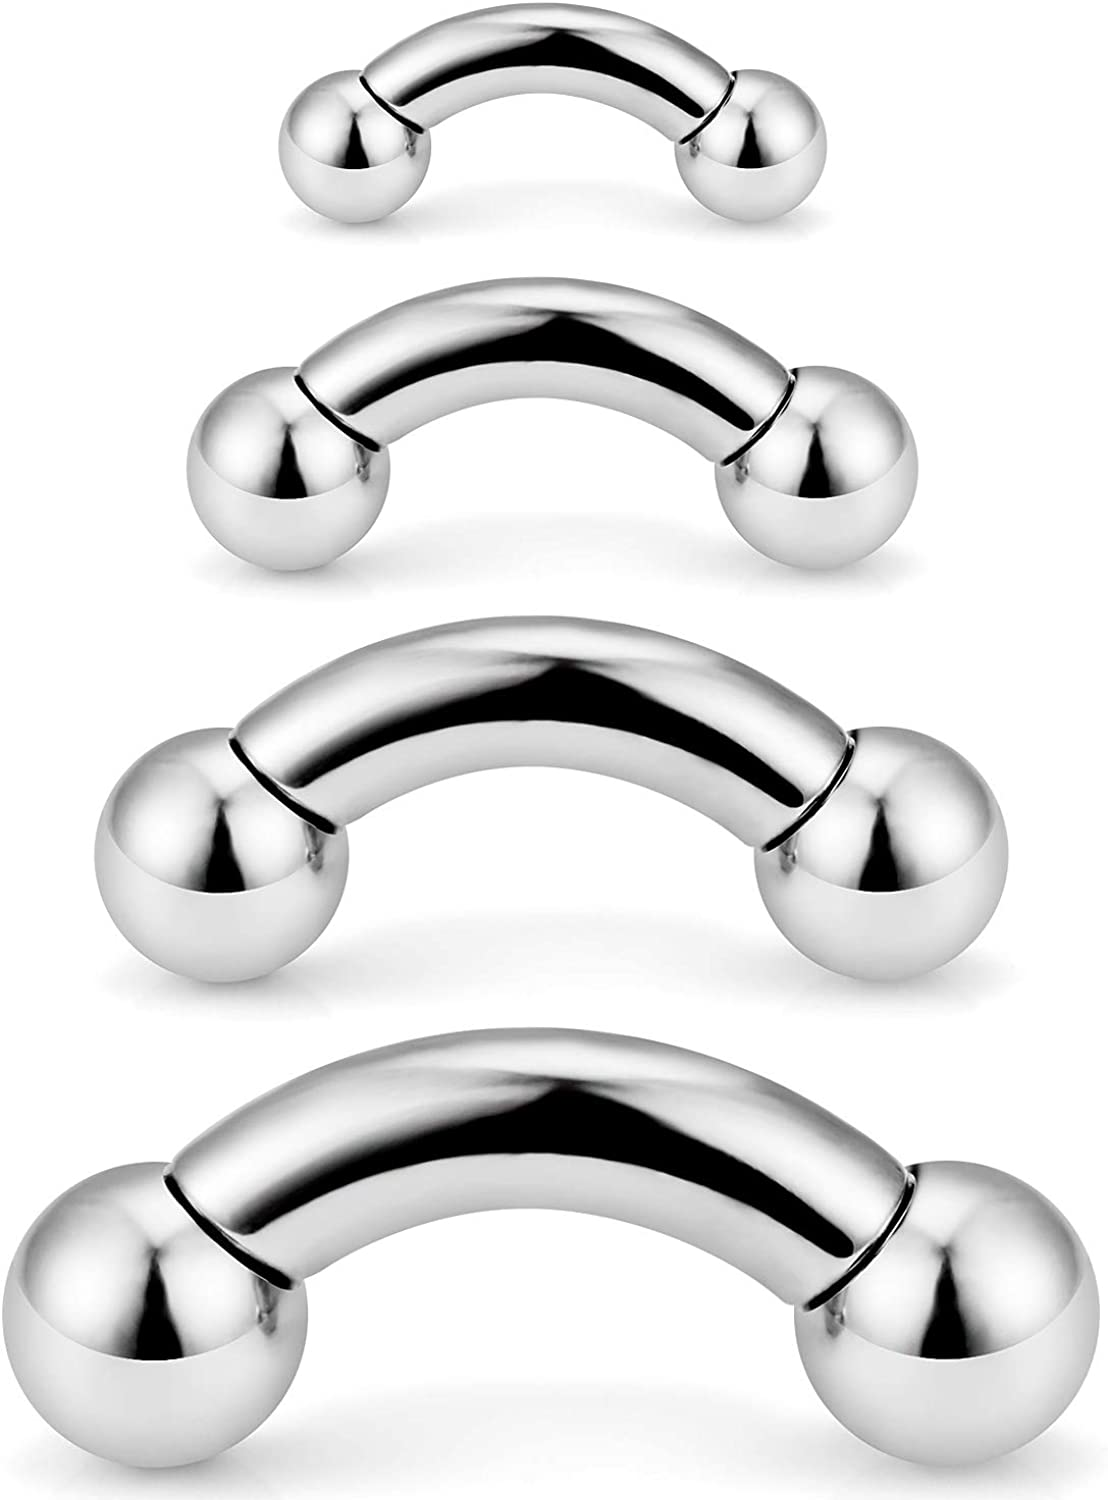 SCERRING 2-4PCS PA Ring Bent Curved Barbell Internally Threaded Monster Screwball Rings 316L Surgical Steel Body Piercing Jewelry 2G 4G 6G 8G